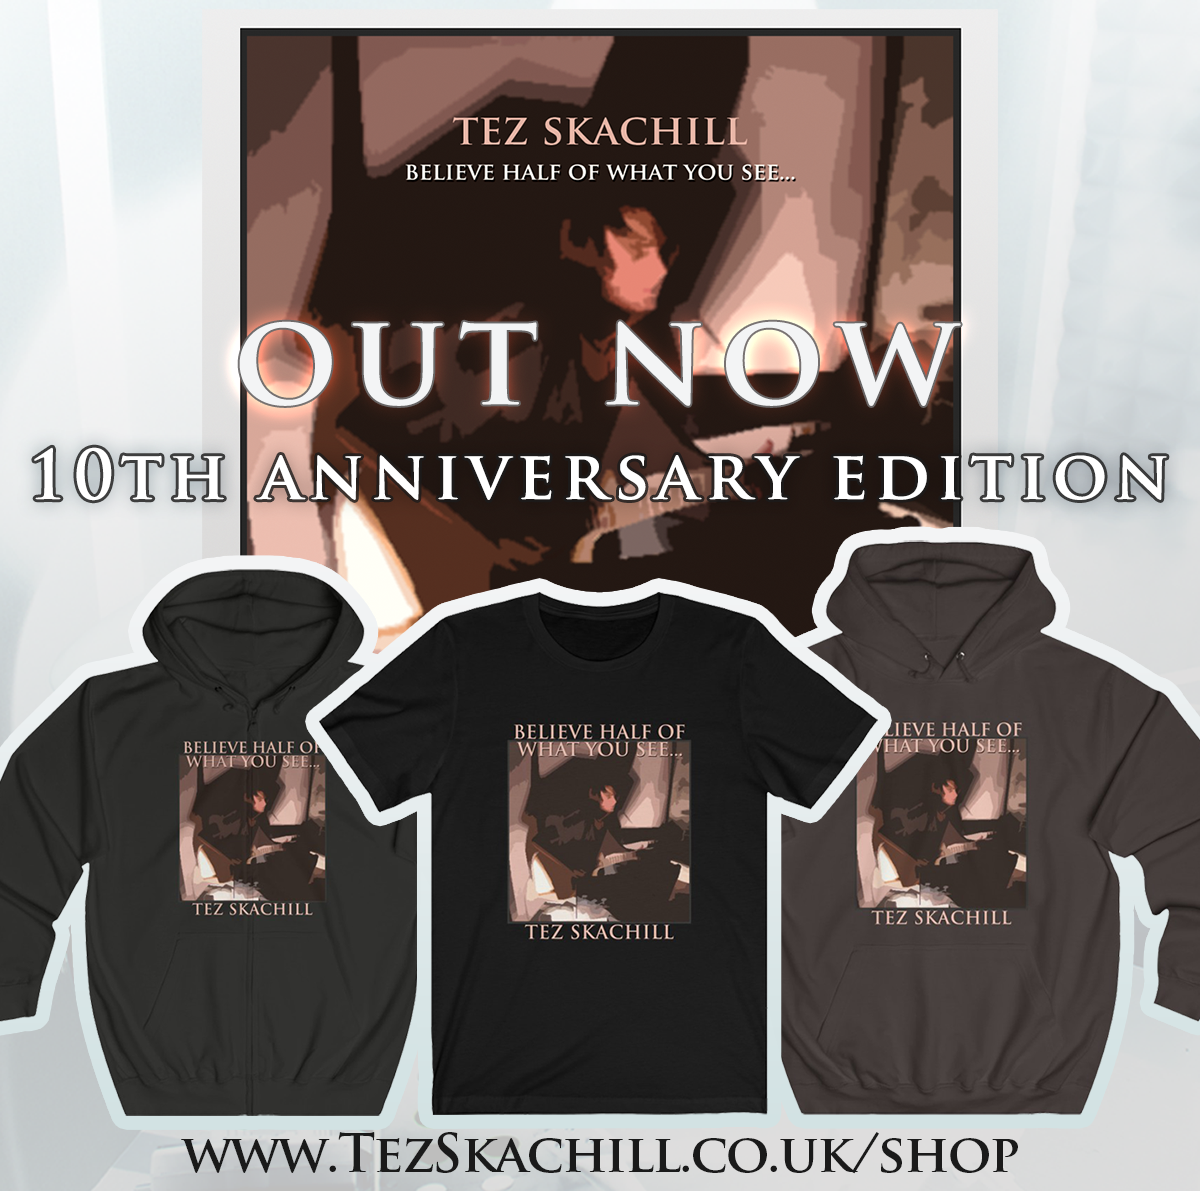 Tez Skachill - Believe Half Of What You See... 10th Anniversary Album Edition CD Out Now from website store